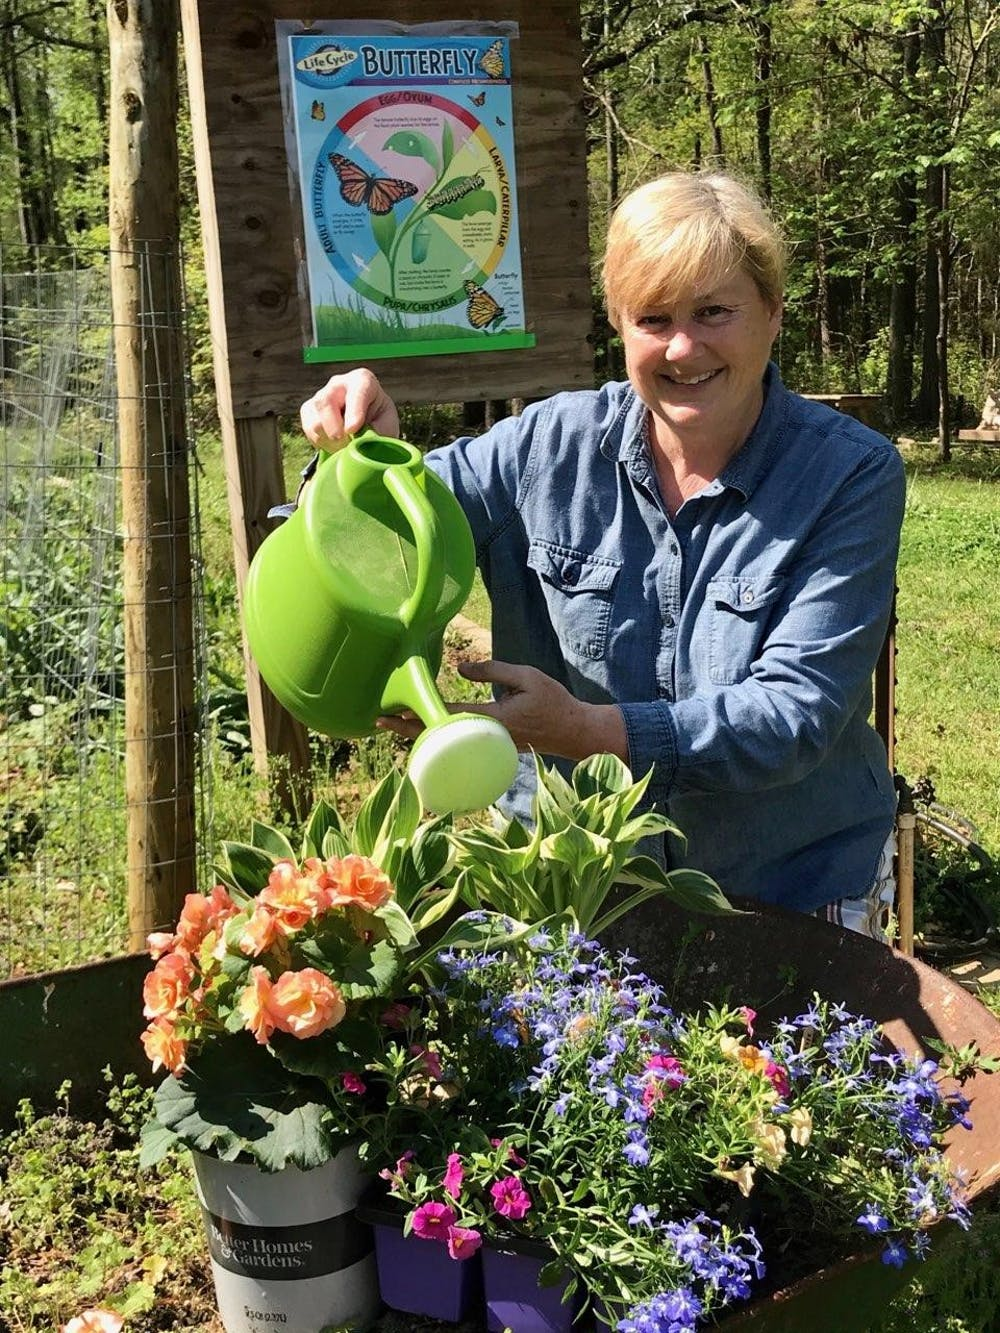 Afterschool care coordinator inspires others to grow